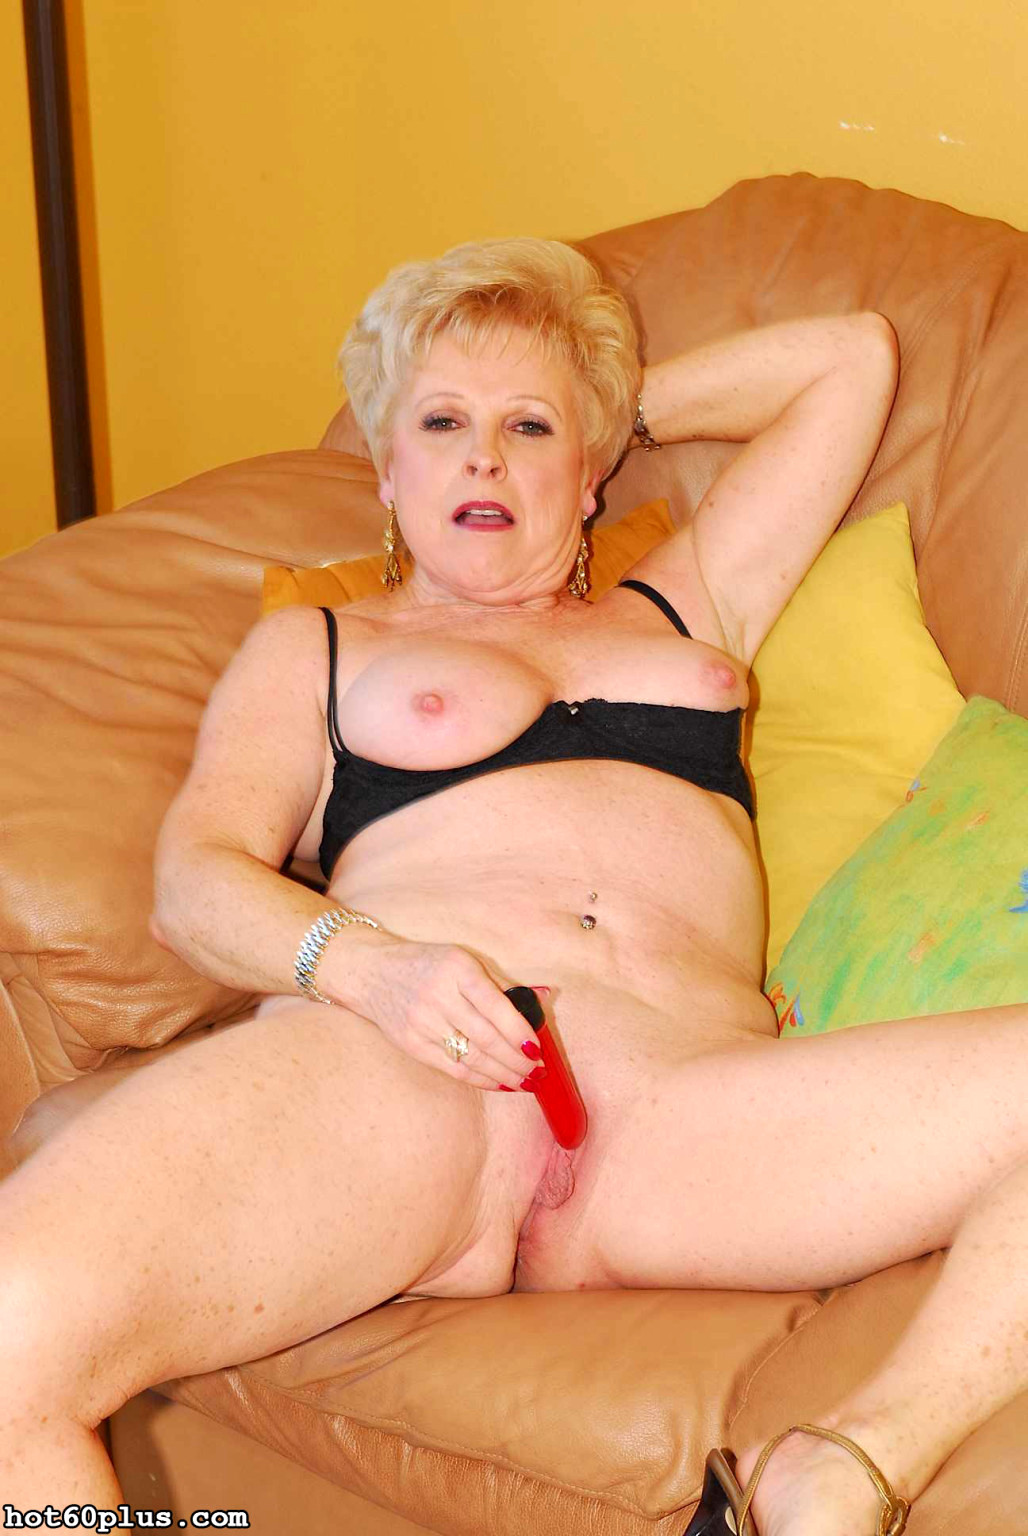 Babe Today Hot 60 Plus Hot60Plus Model Sweet Granny Sex -1361